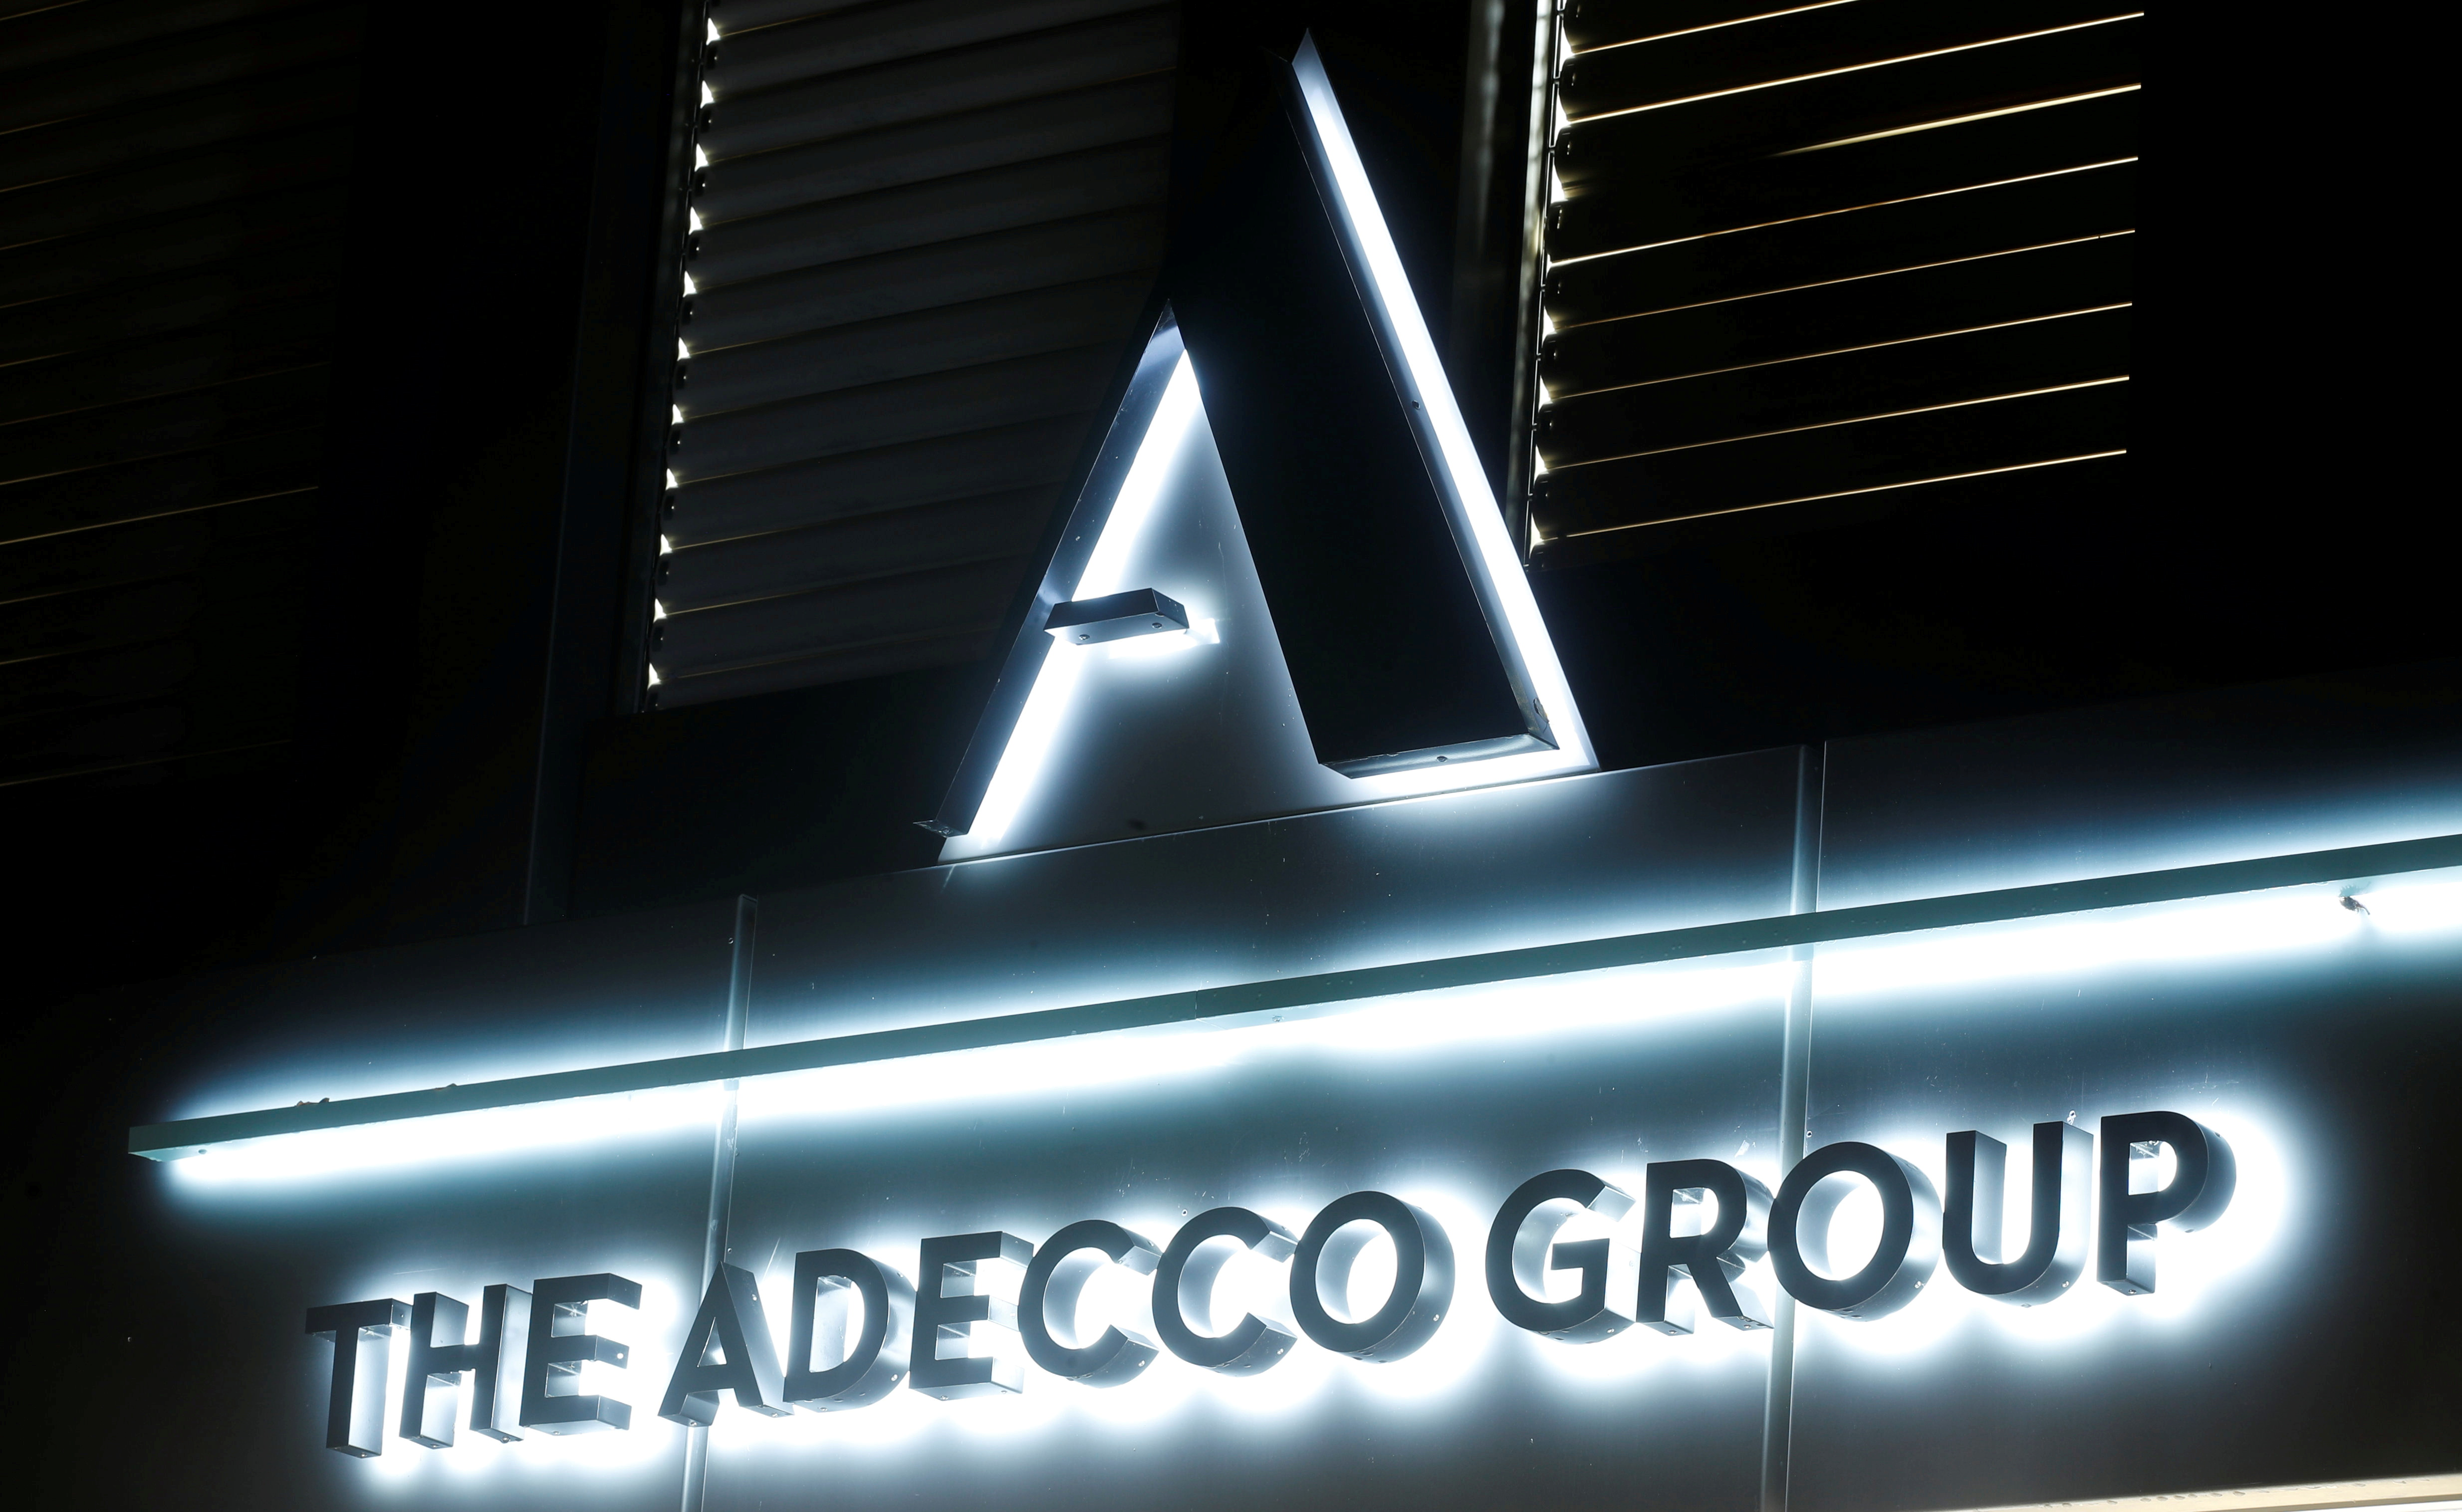 The logo of Swiss Adecco Group is seen at its headquarters in Zurich, Switzerland October 30, 2018. Picture taken October 30, 2018. REUTERS/Arnd Wiegmann/File Photo